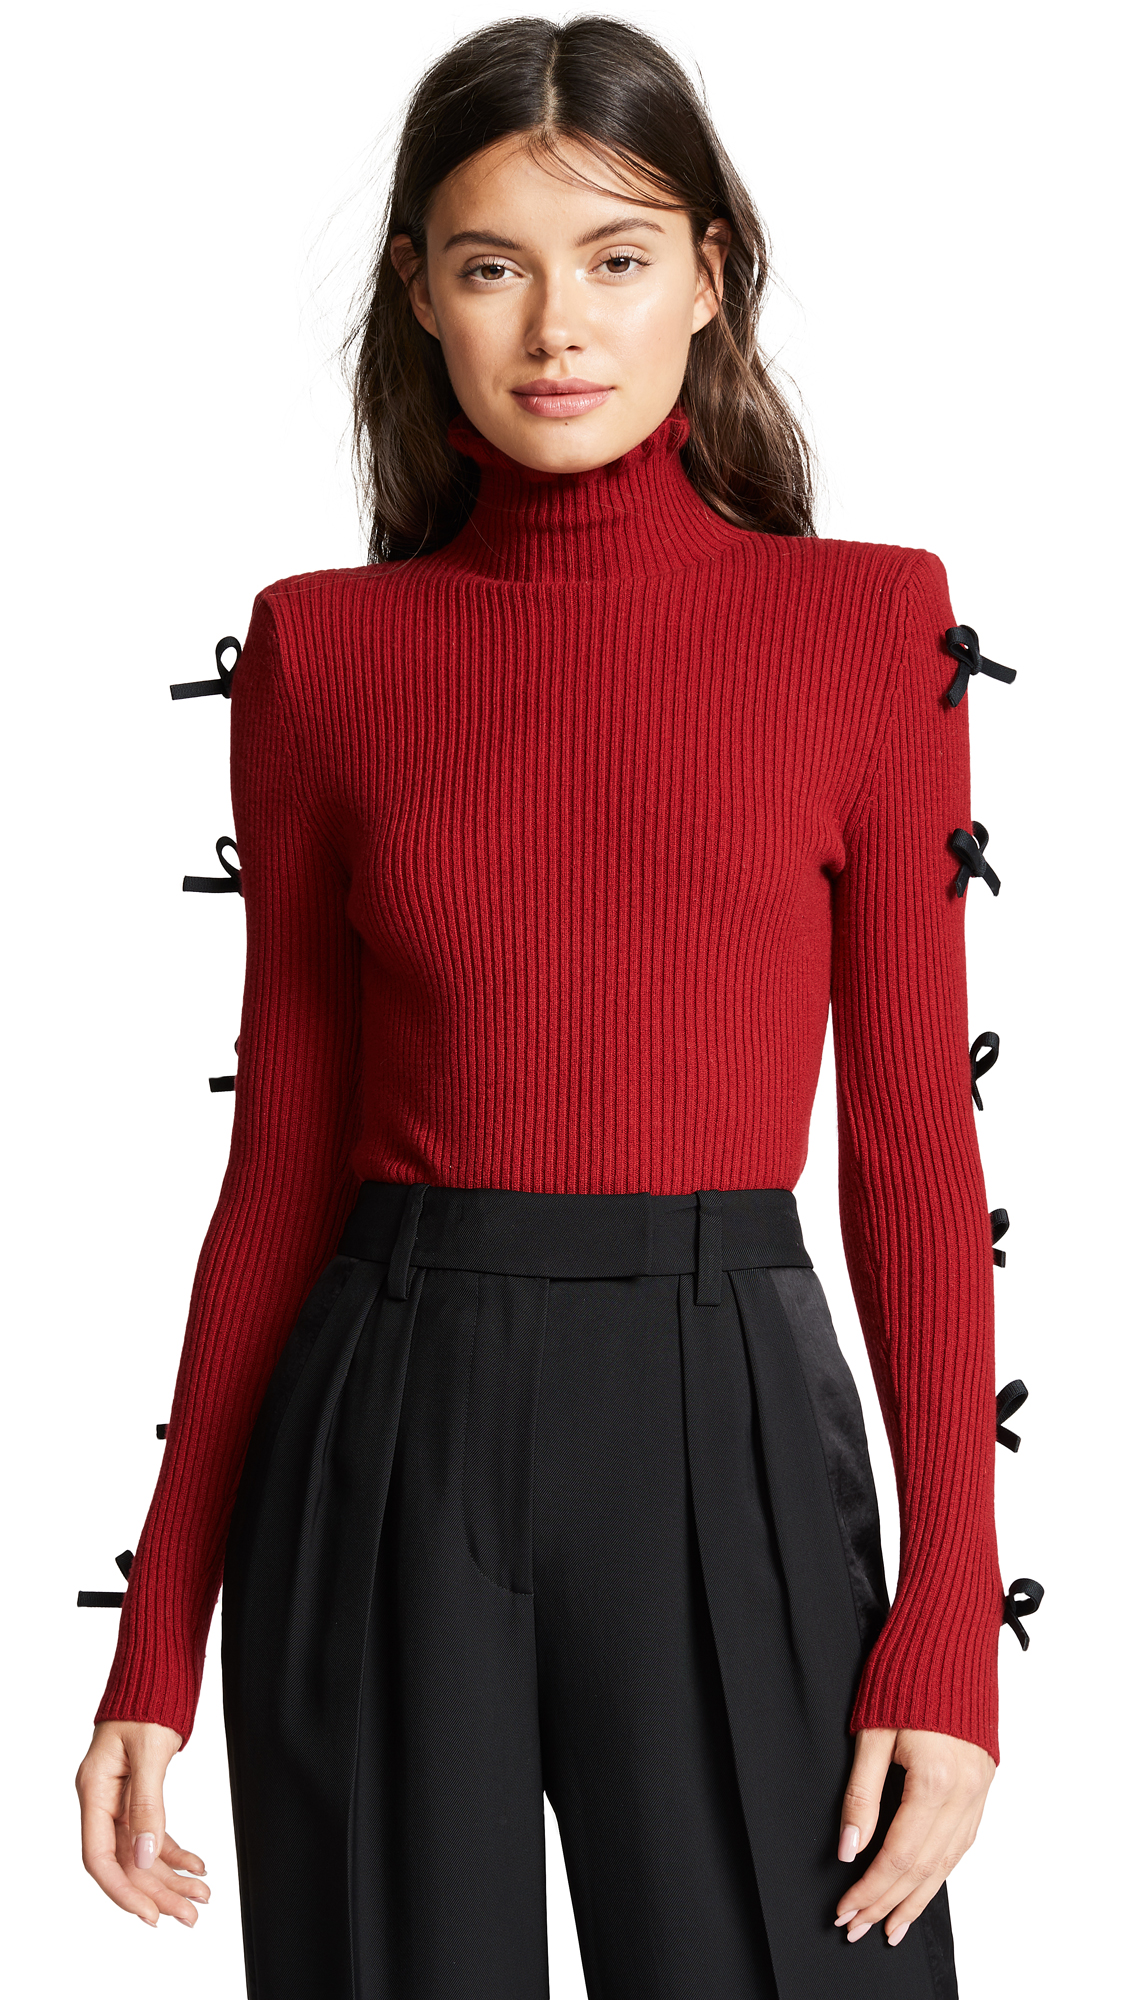 Ribbed Knit With Bows, Burgundy